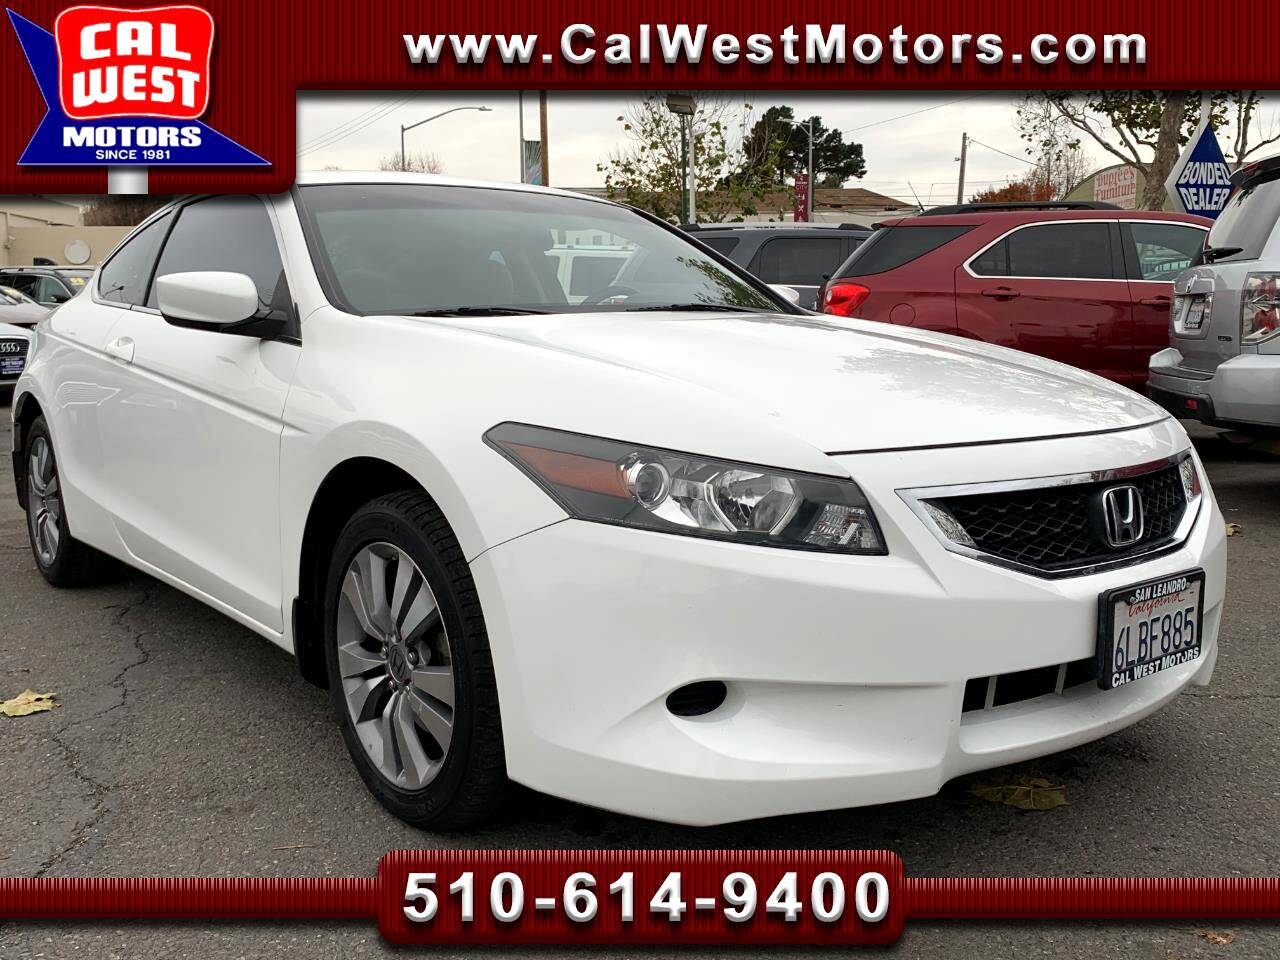 2010 Honda Accord EX Coupe AT BUCam LowMiles 1Owner SuperClean